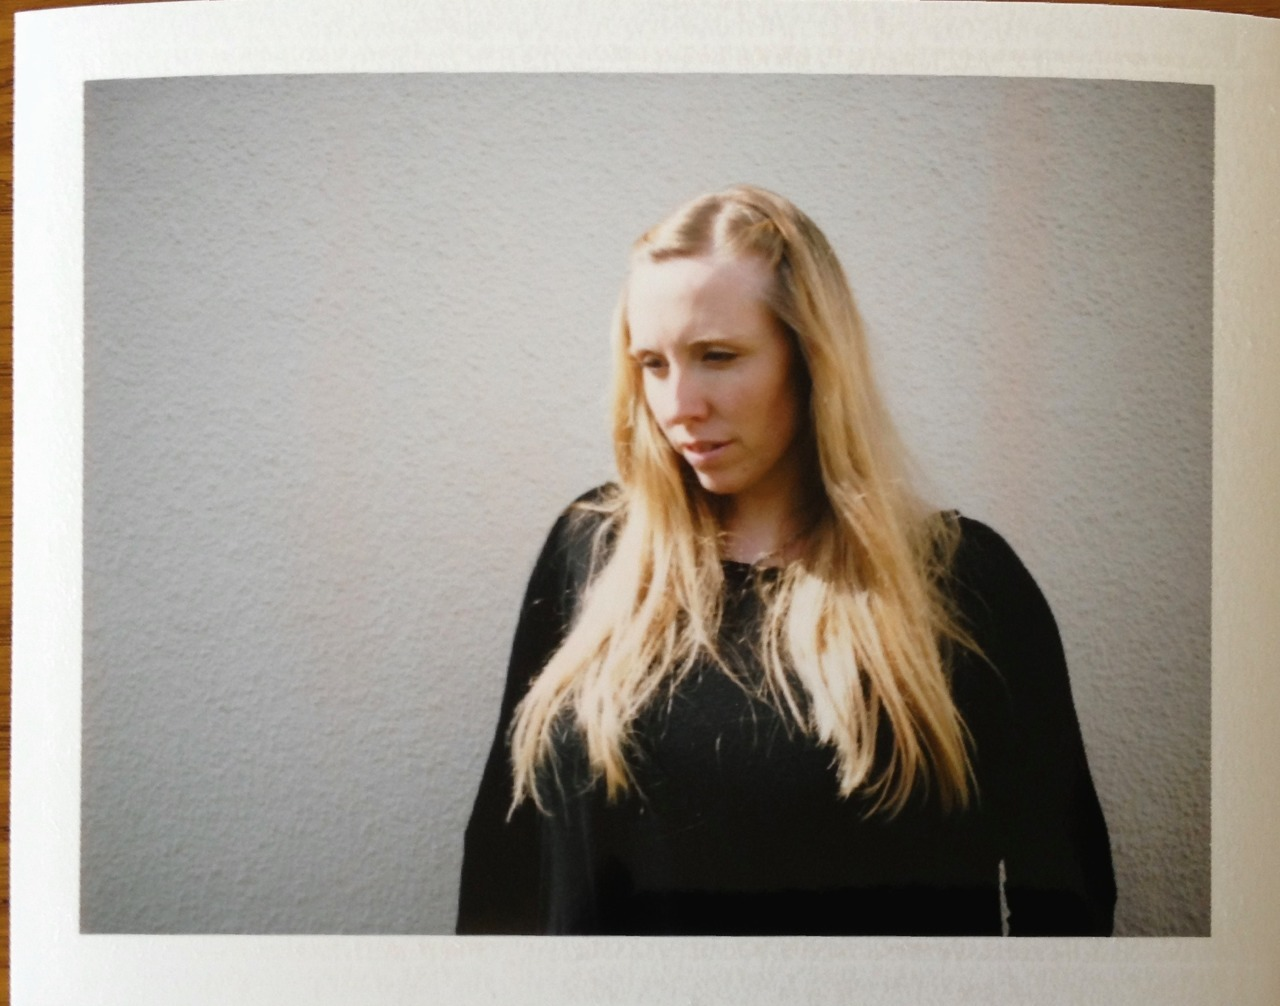 Louise #polaroid #photography